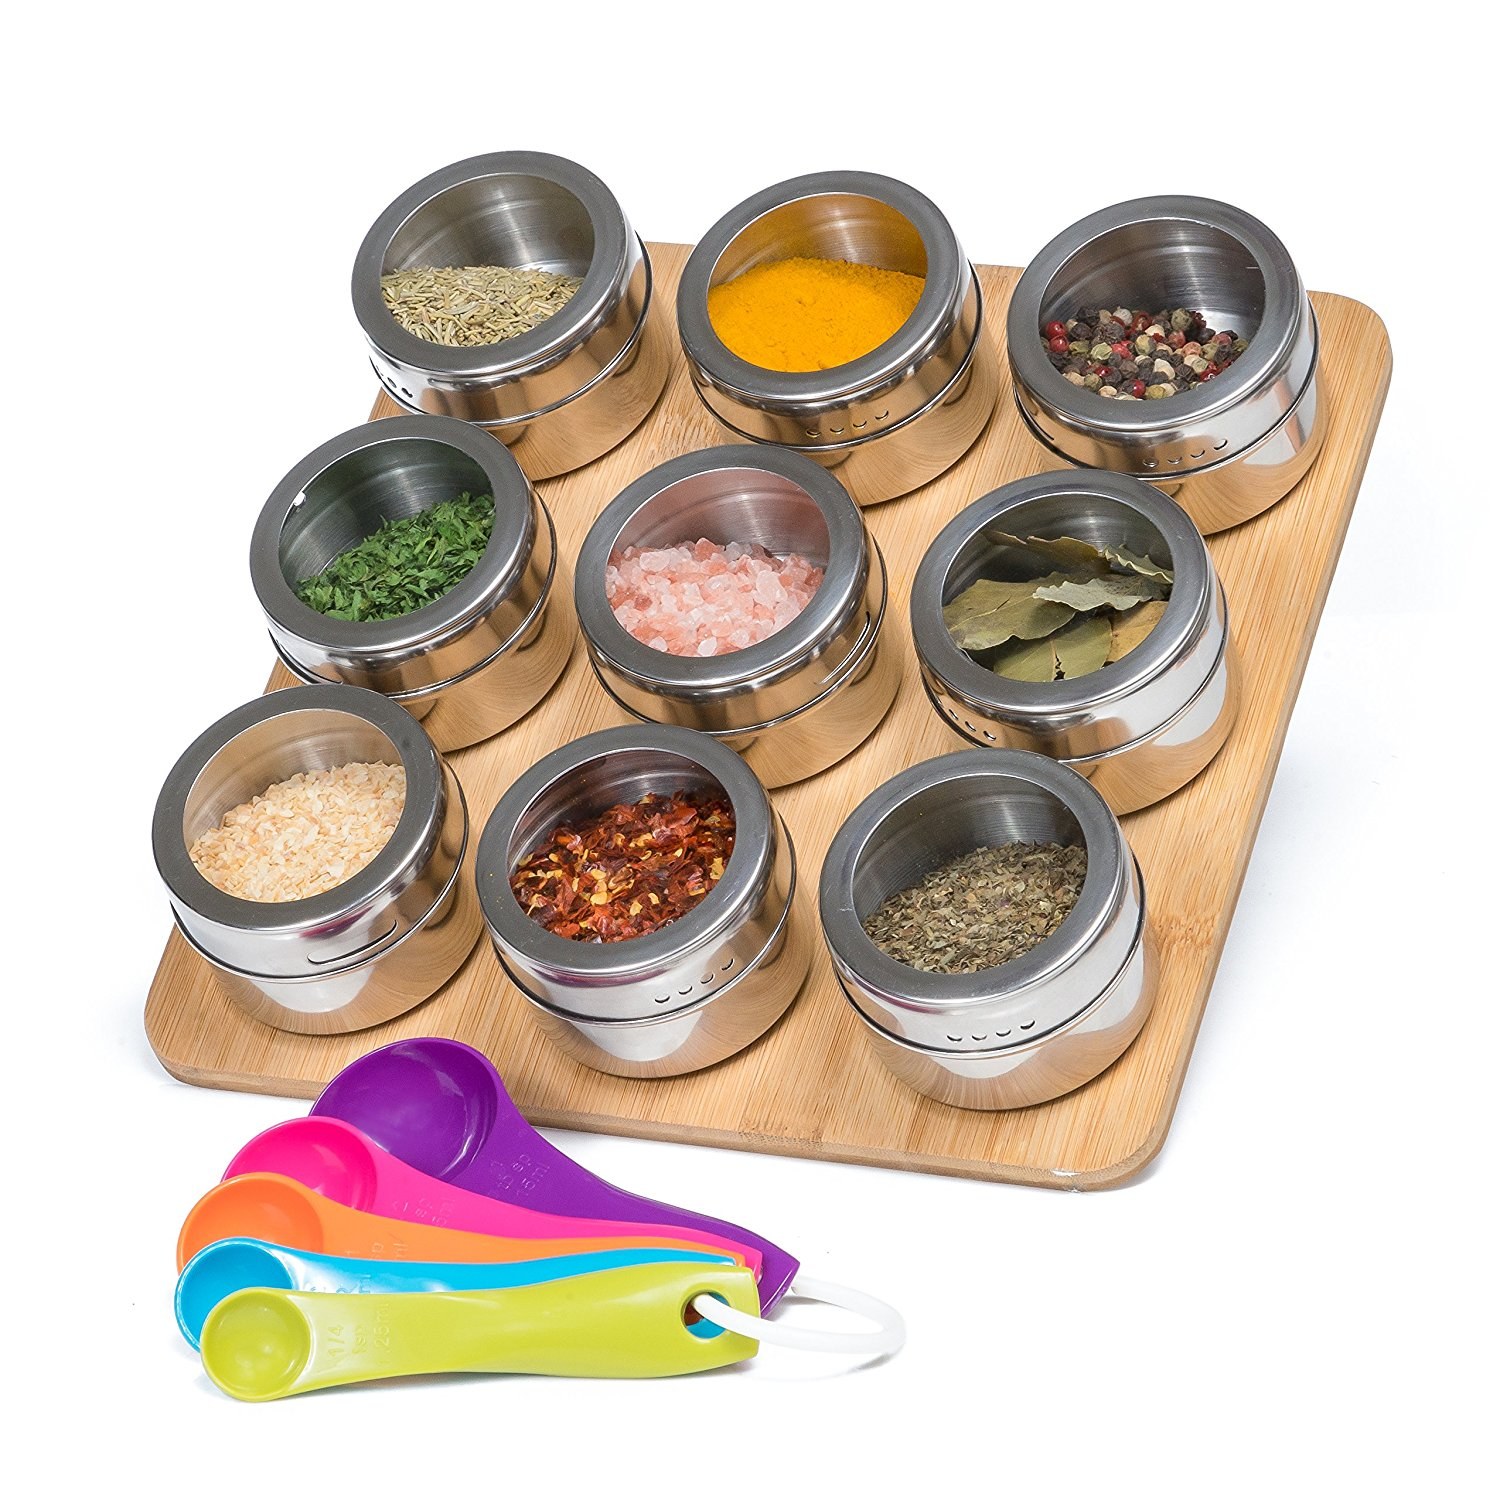 Nellam Spice Rack Magnetic with Bamboo Wood Stand and Wall Mount 9